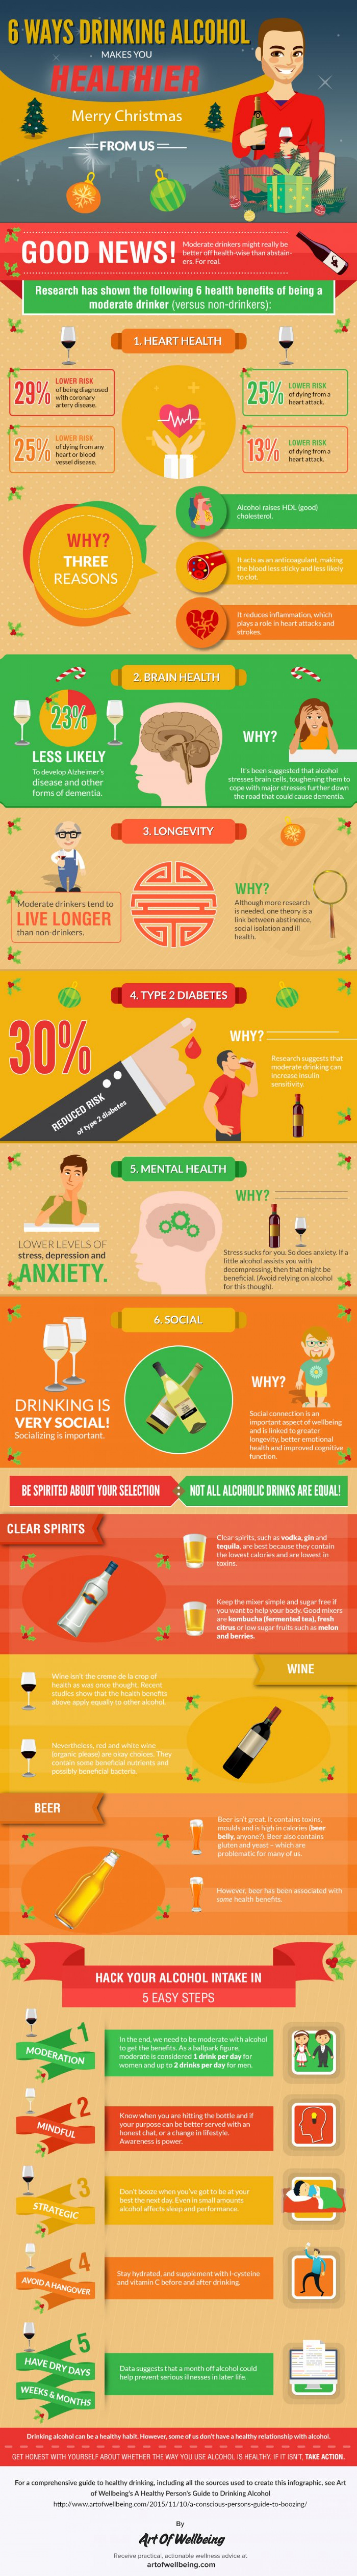 6 Ways Drinking Alcohol Makes You Healthier Infographic